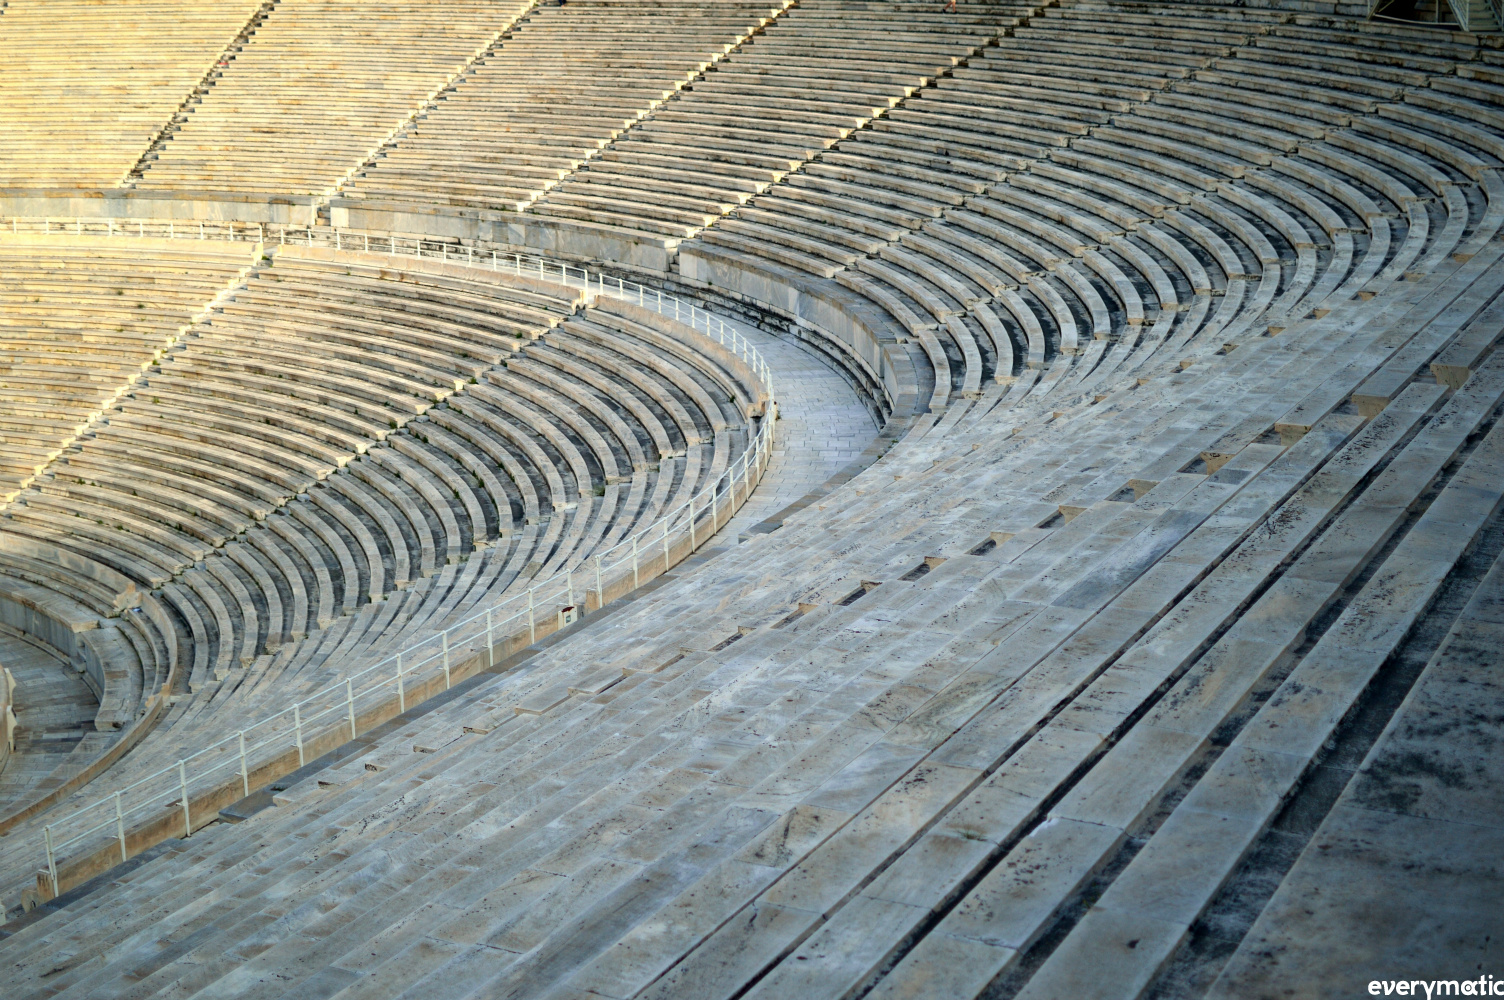 The Panathenaiko stadium in Athens, built to host the first Olympics of the modern era in 1896.